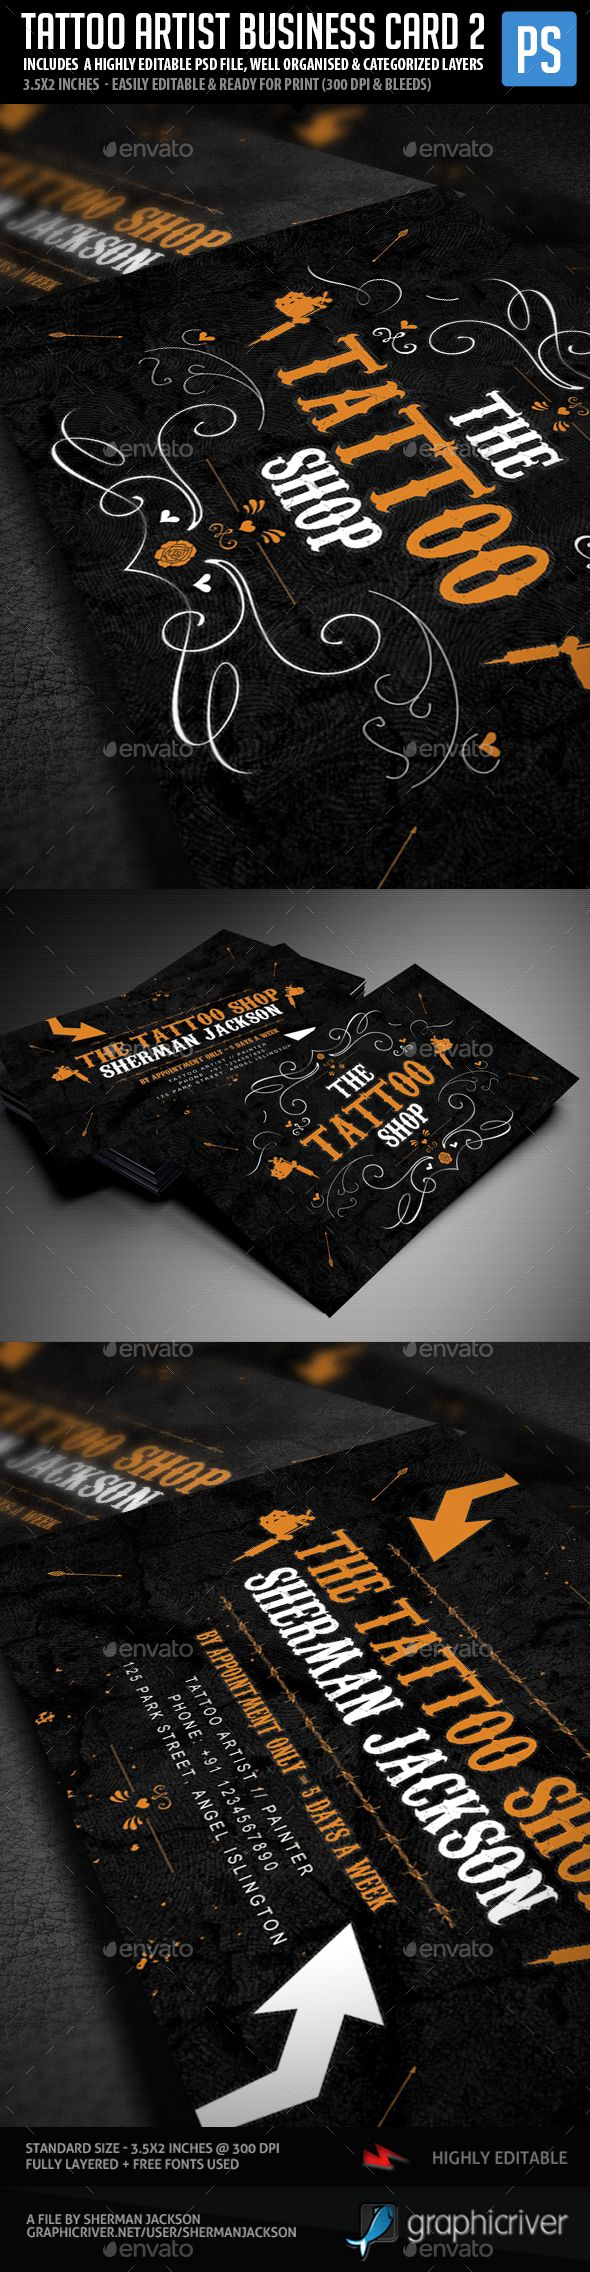 Tattoo Artist Business Cards V.2 | Pinterest | Business card design ...